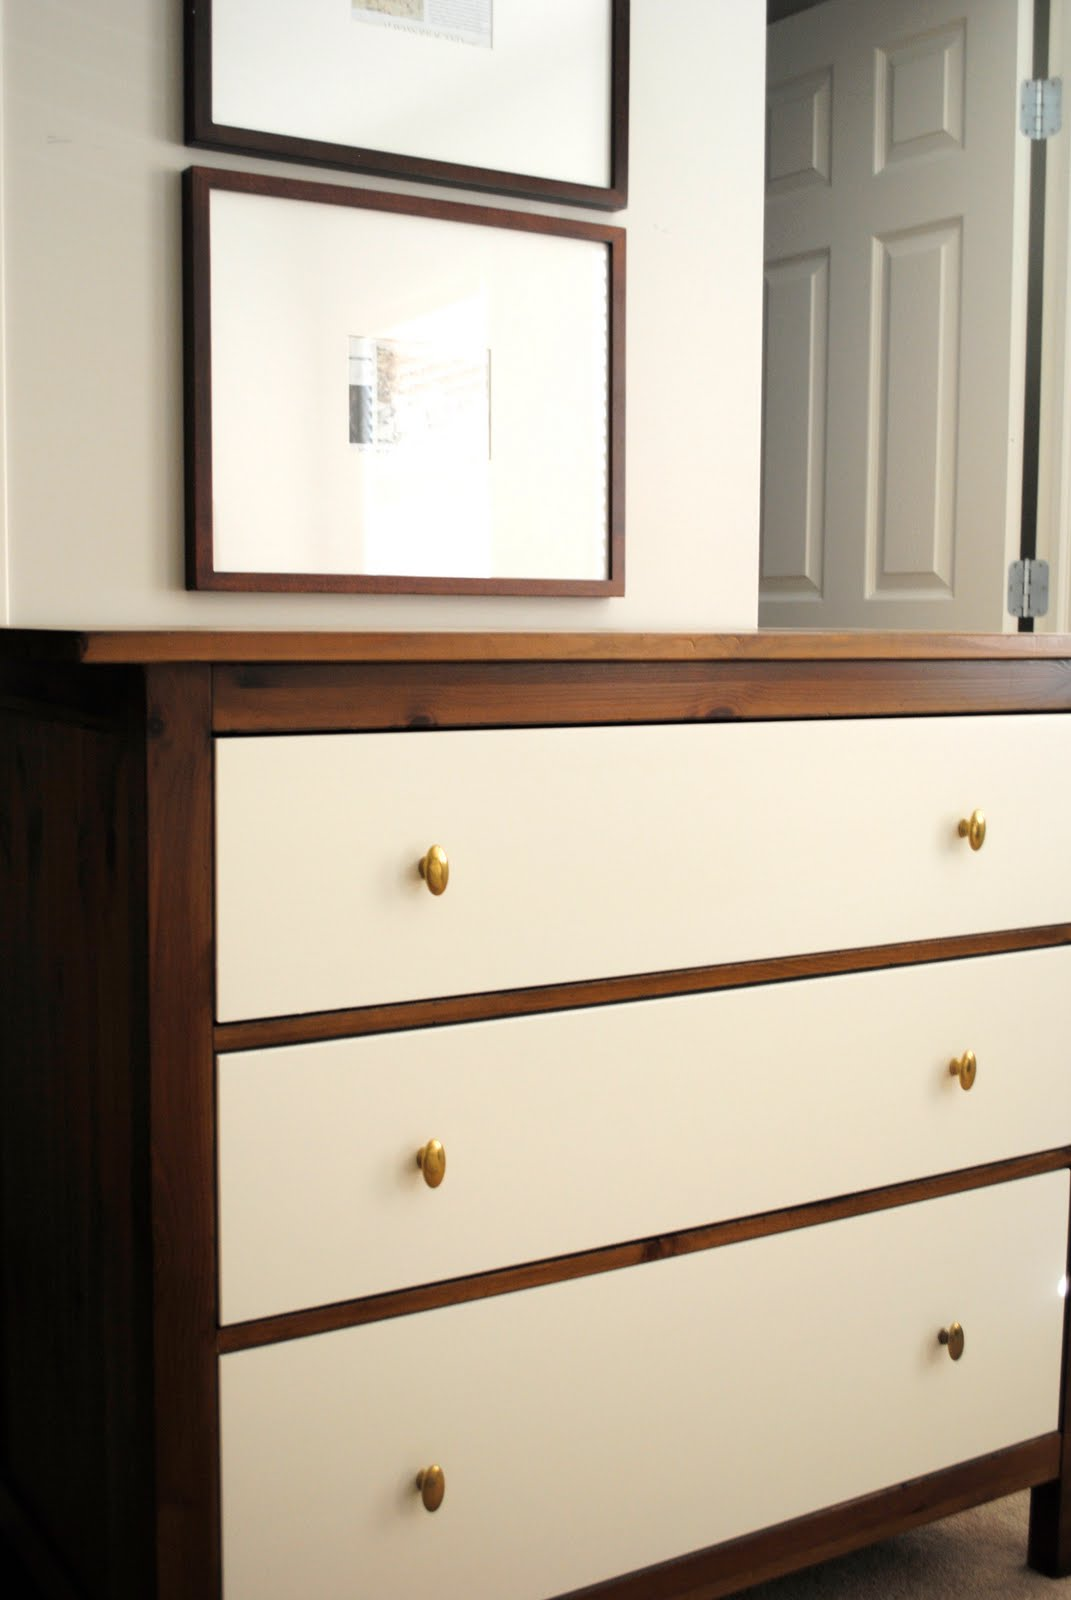 flourish design style the final update to the ikea dresser update. Black Bedroom Furniture Sets. Home Design Ideas